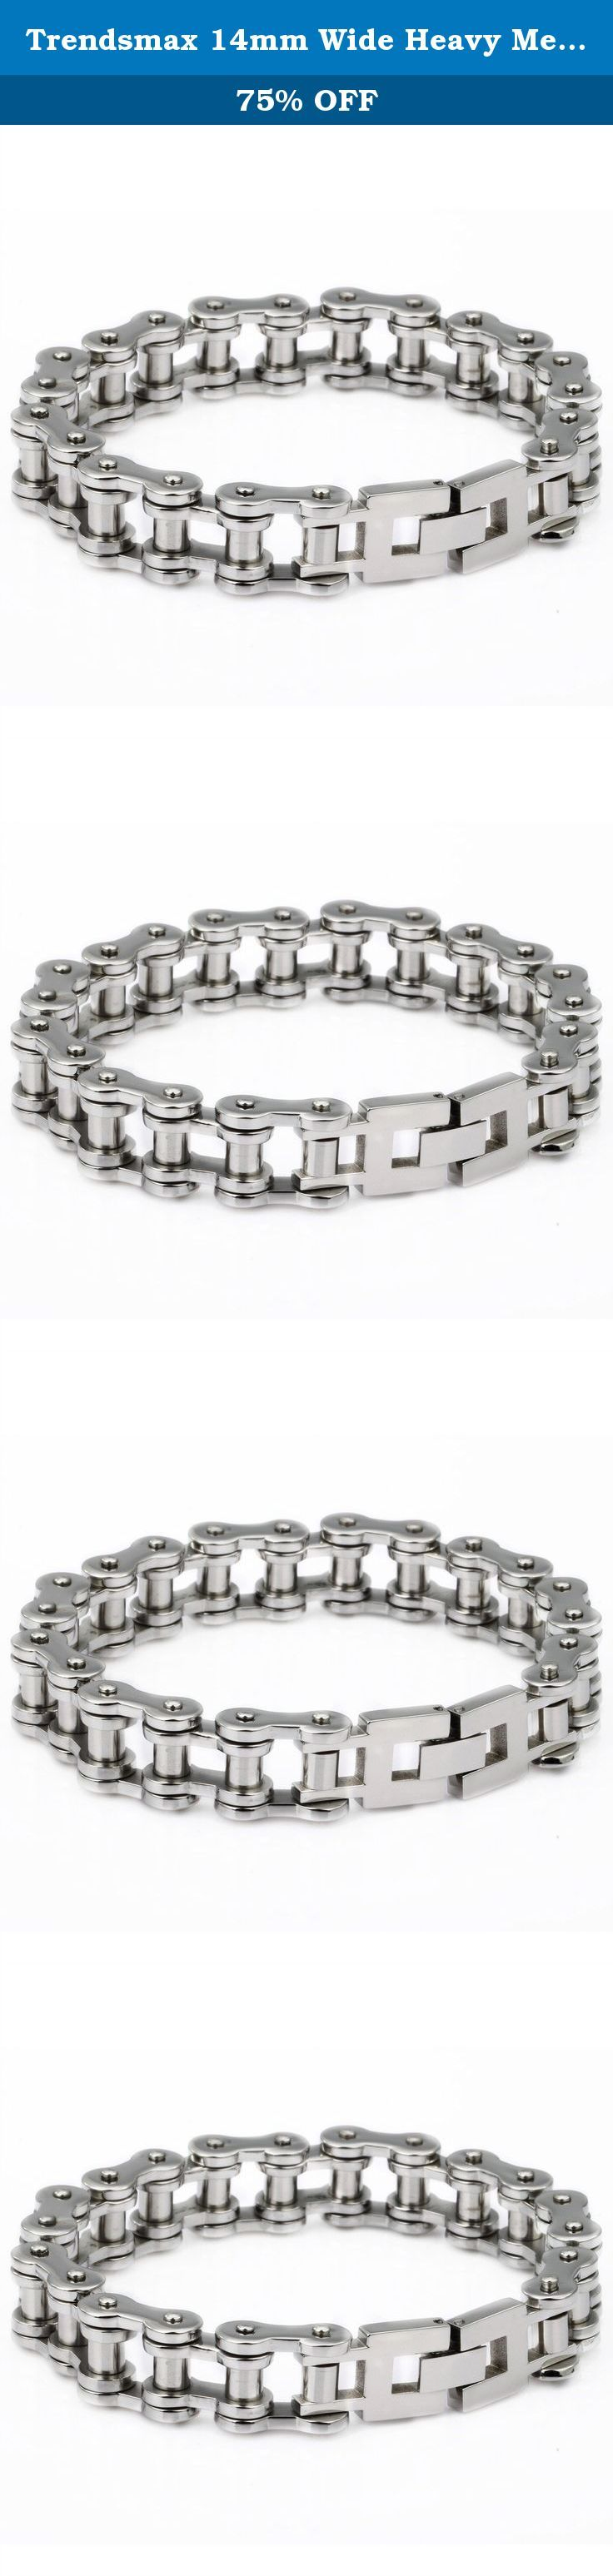 Trendsmax 14mm Wide Heavy Mens Boys Biker Jewelry Motorcycle Chain 316L Stainless Steel Bracelet. Trendsmax 14mm Wide Heavy Mens Jewelry Boys Biker Jewelry Motorcycle Chain 316L Stainless Steel Bracelet,Material is 316L Stainless Steel,High Quanlity! Fashion Bracelet.Perfect Gift for Father's Day, Christmas Gift.